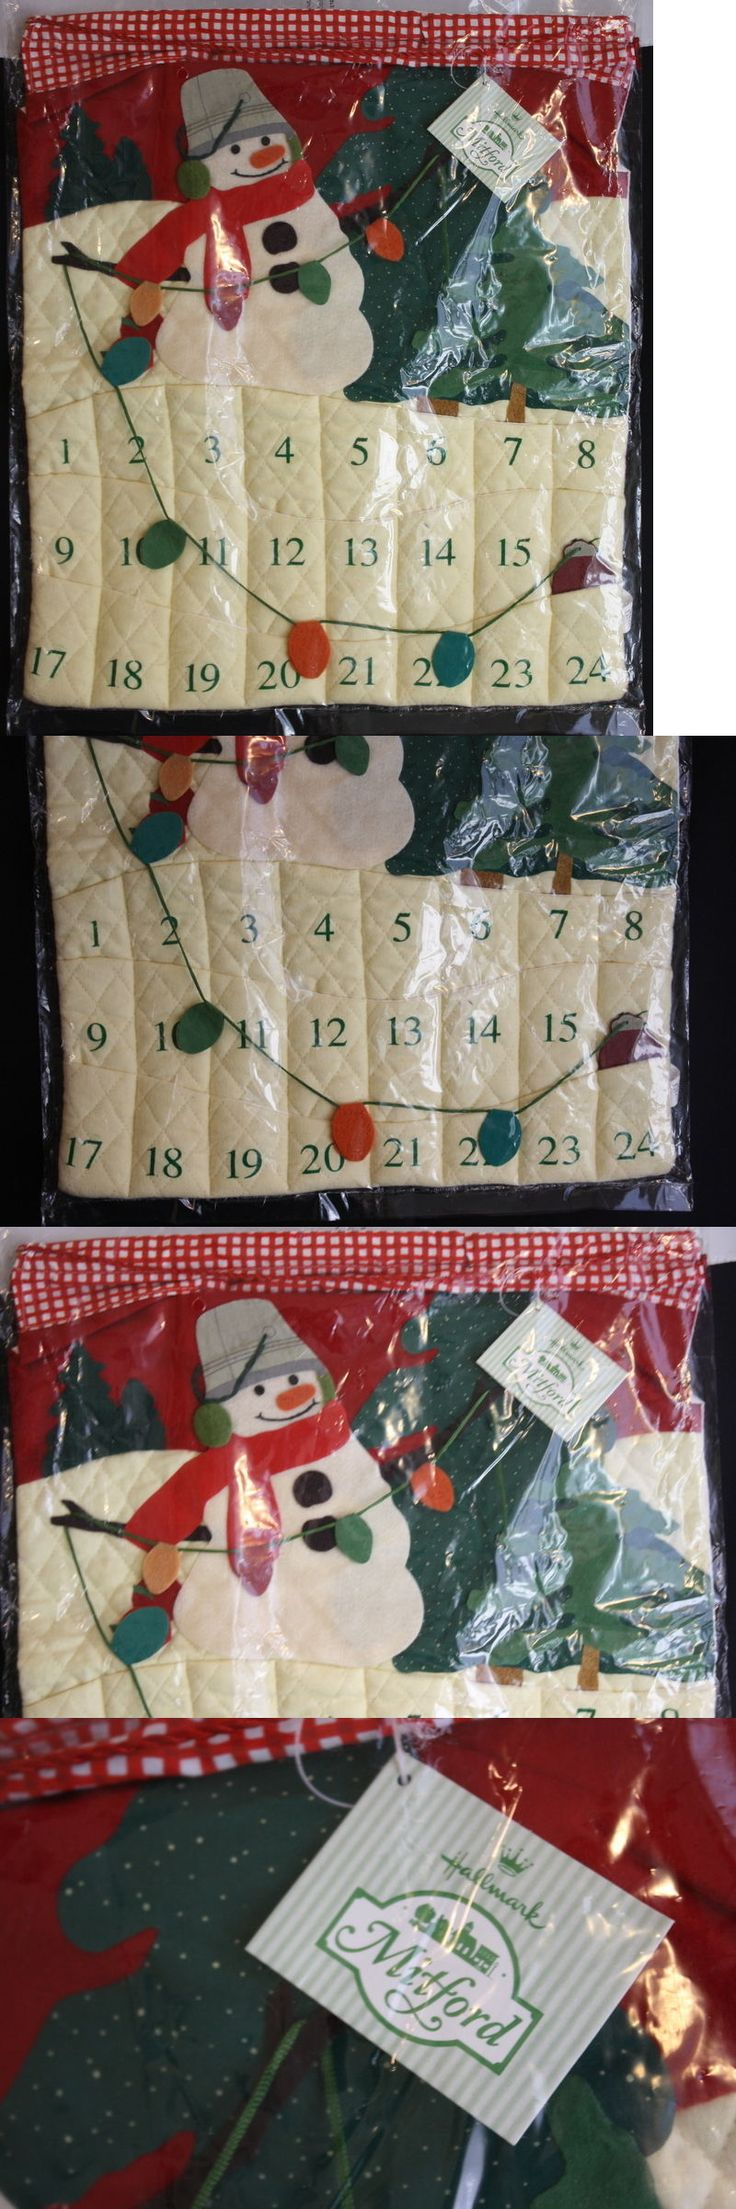 Advent Calendars 156813: 1999 Mitford Snowman Hallmark Advent Hanging Calendar Quilted And Felt -> BUY IT NOW ONLY: $69.99 on eBay!